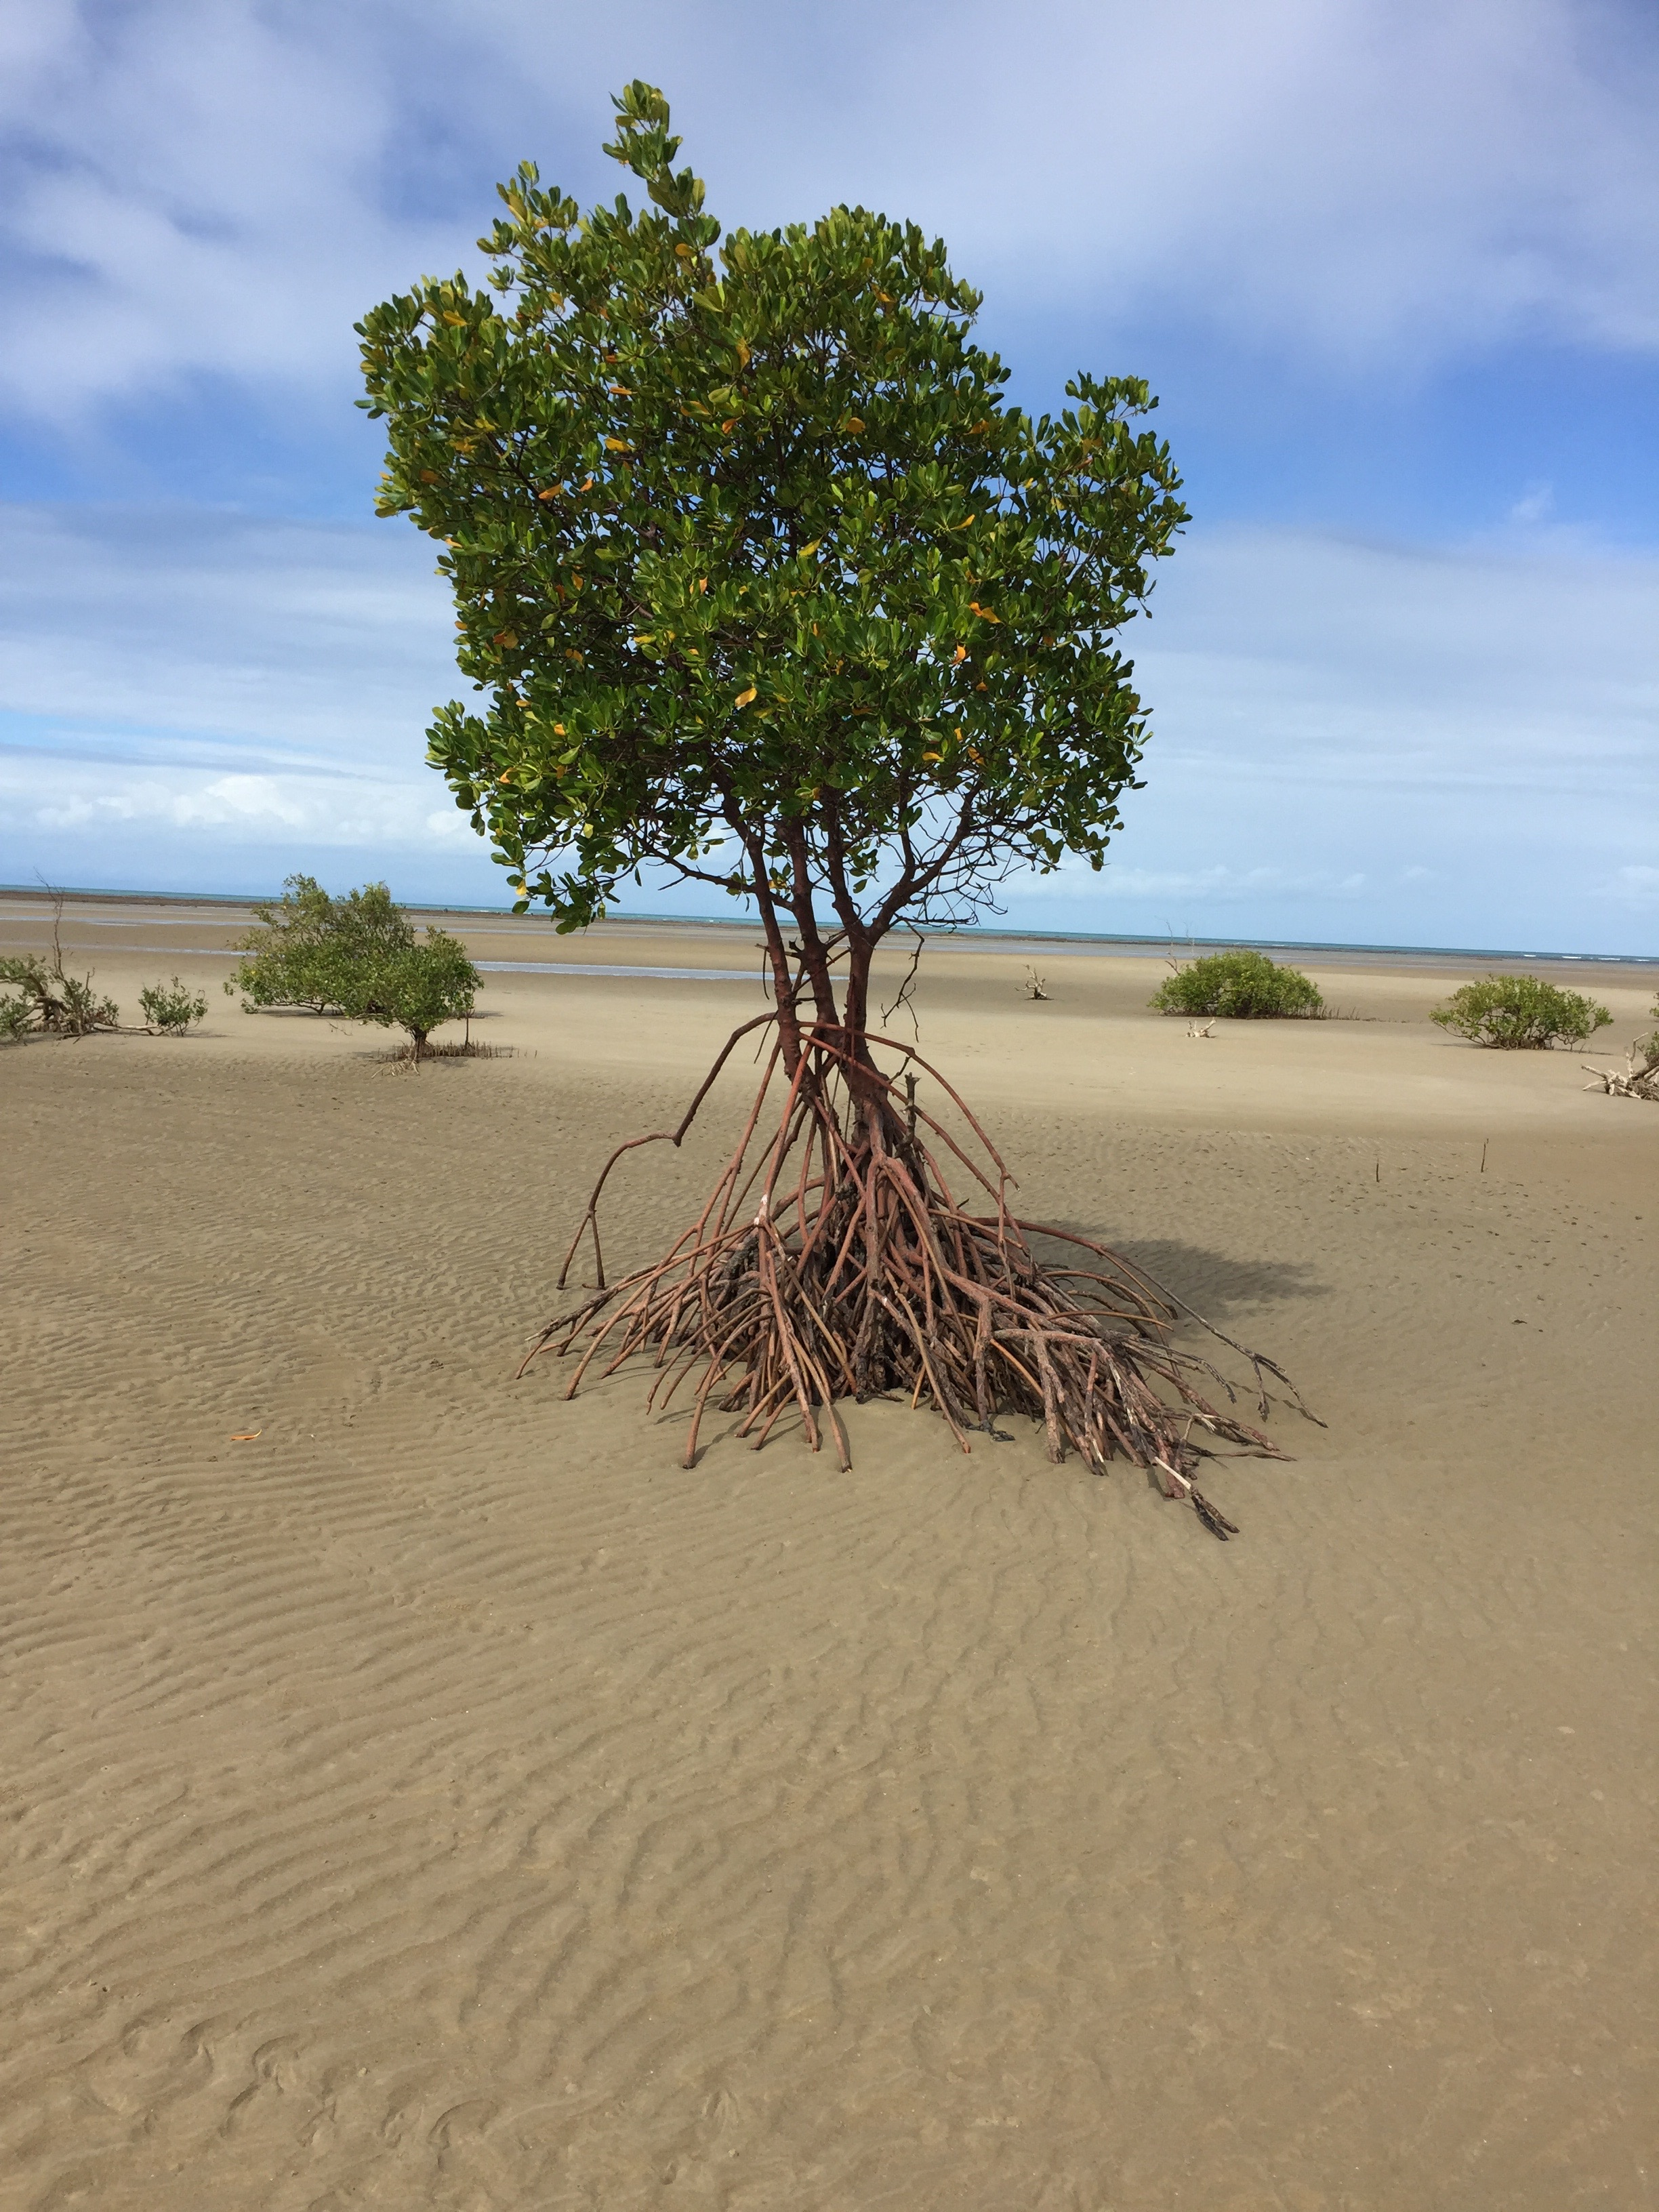 Mangroves 4 Mile Beach